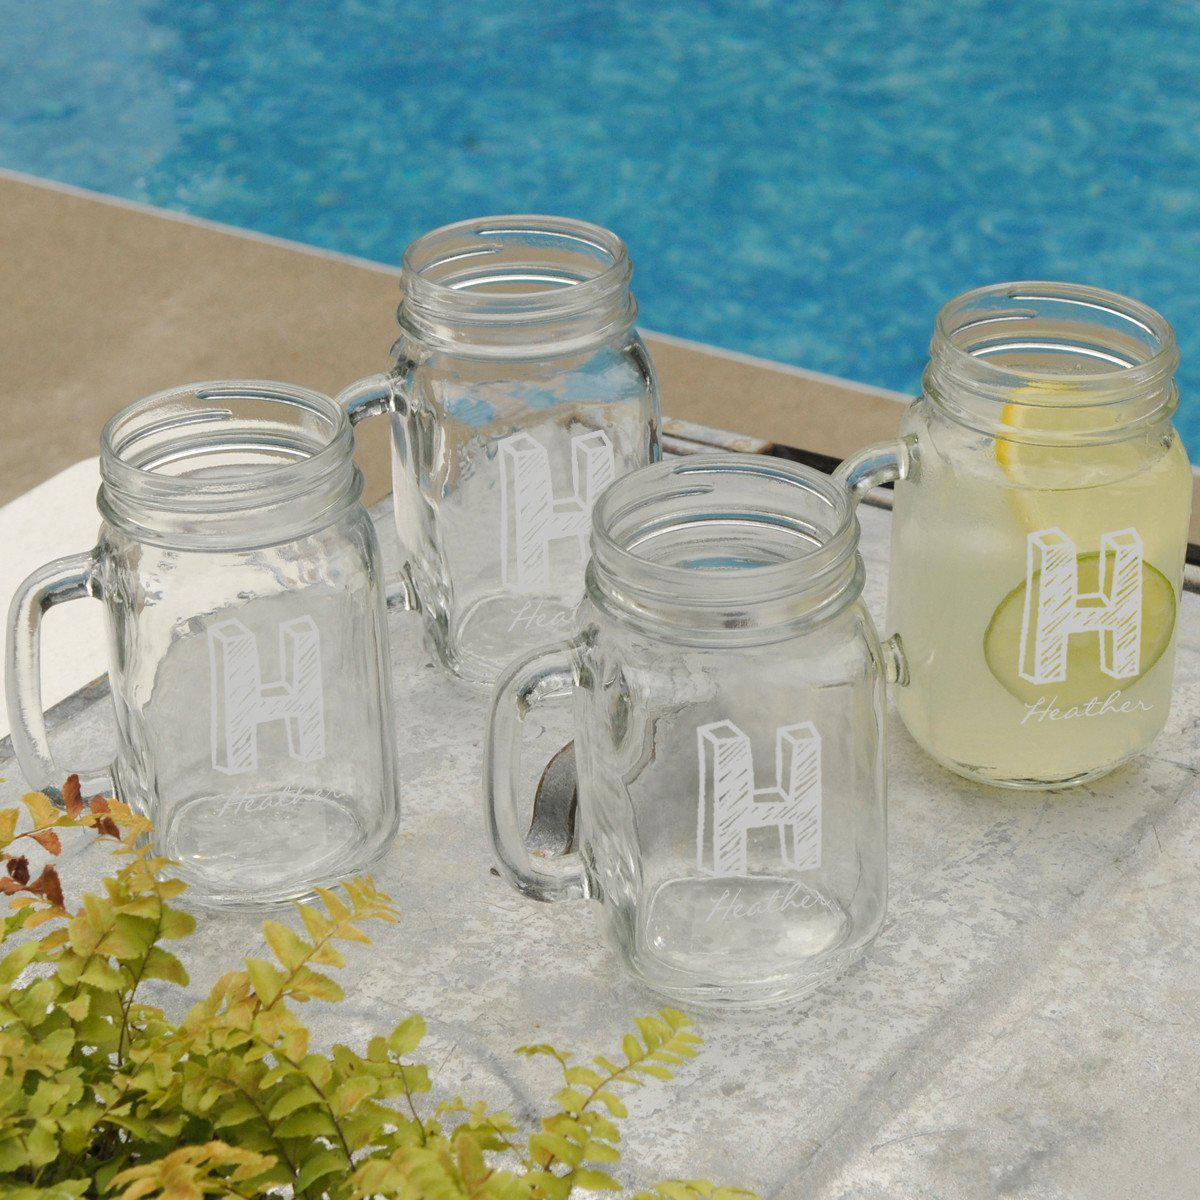 Personalized Mason Jar Glasses - Set of 4